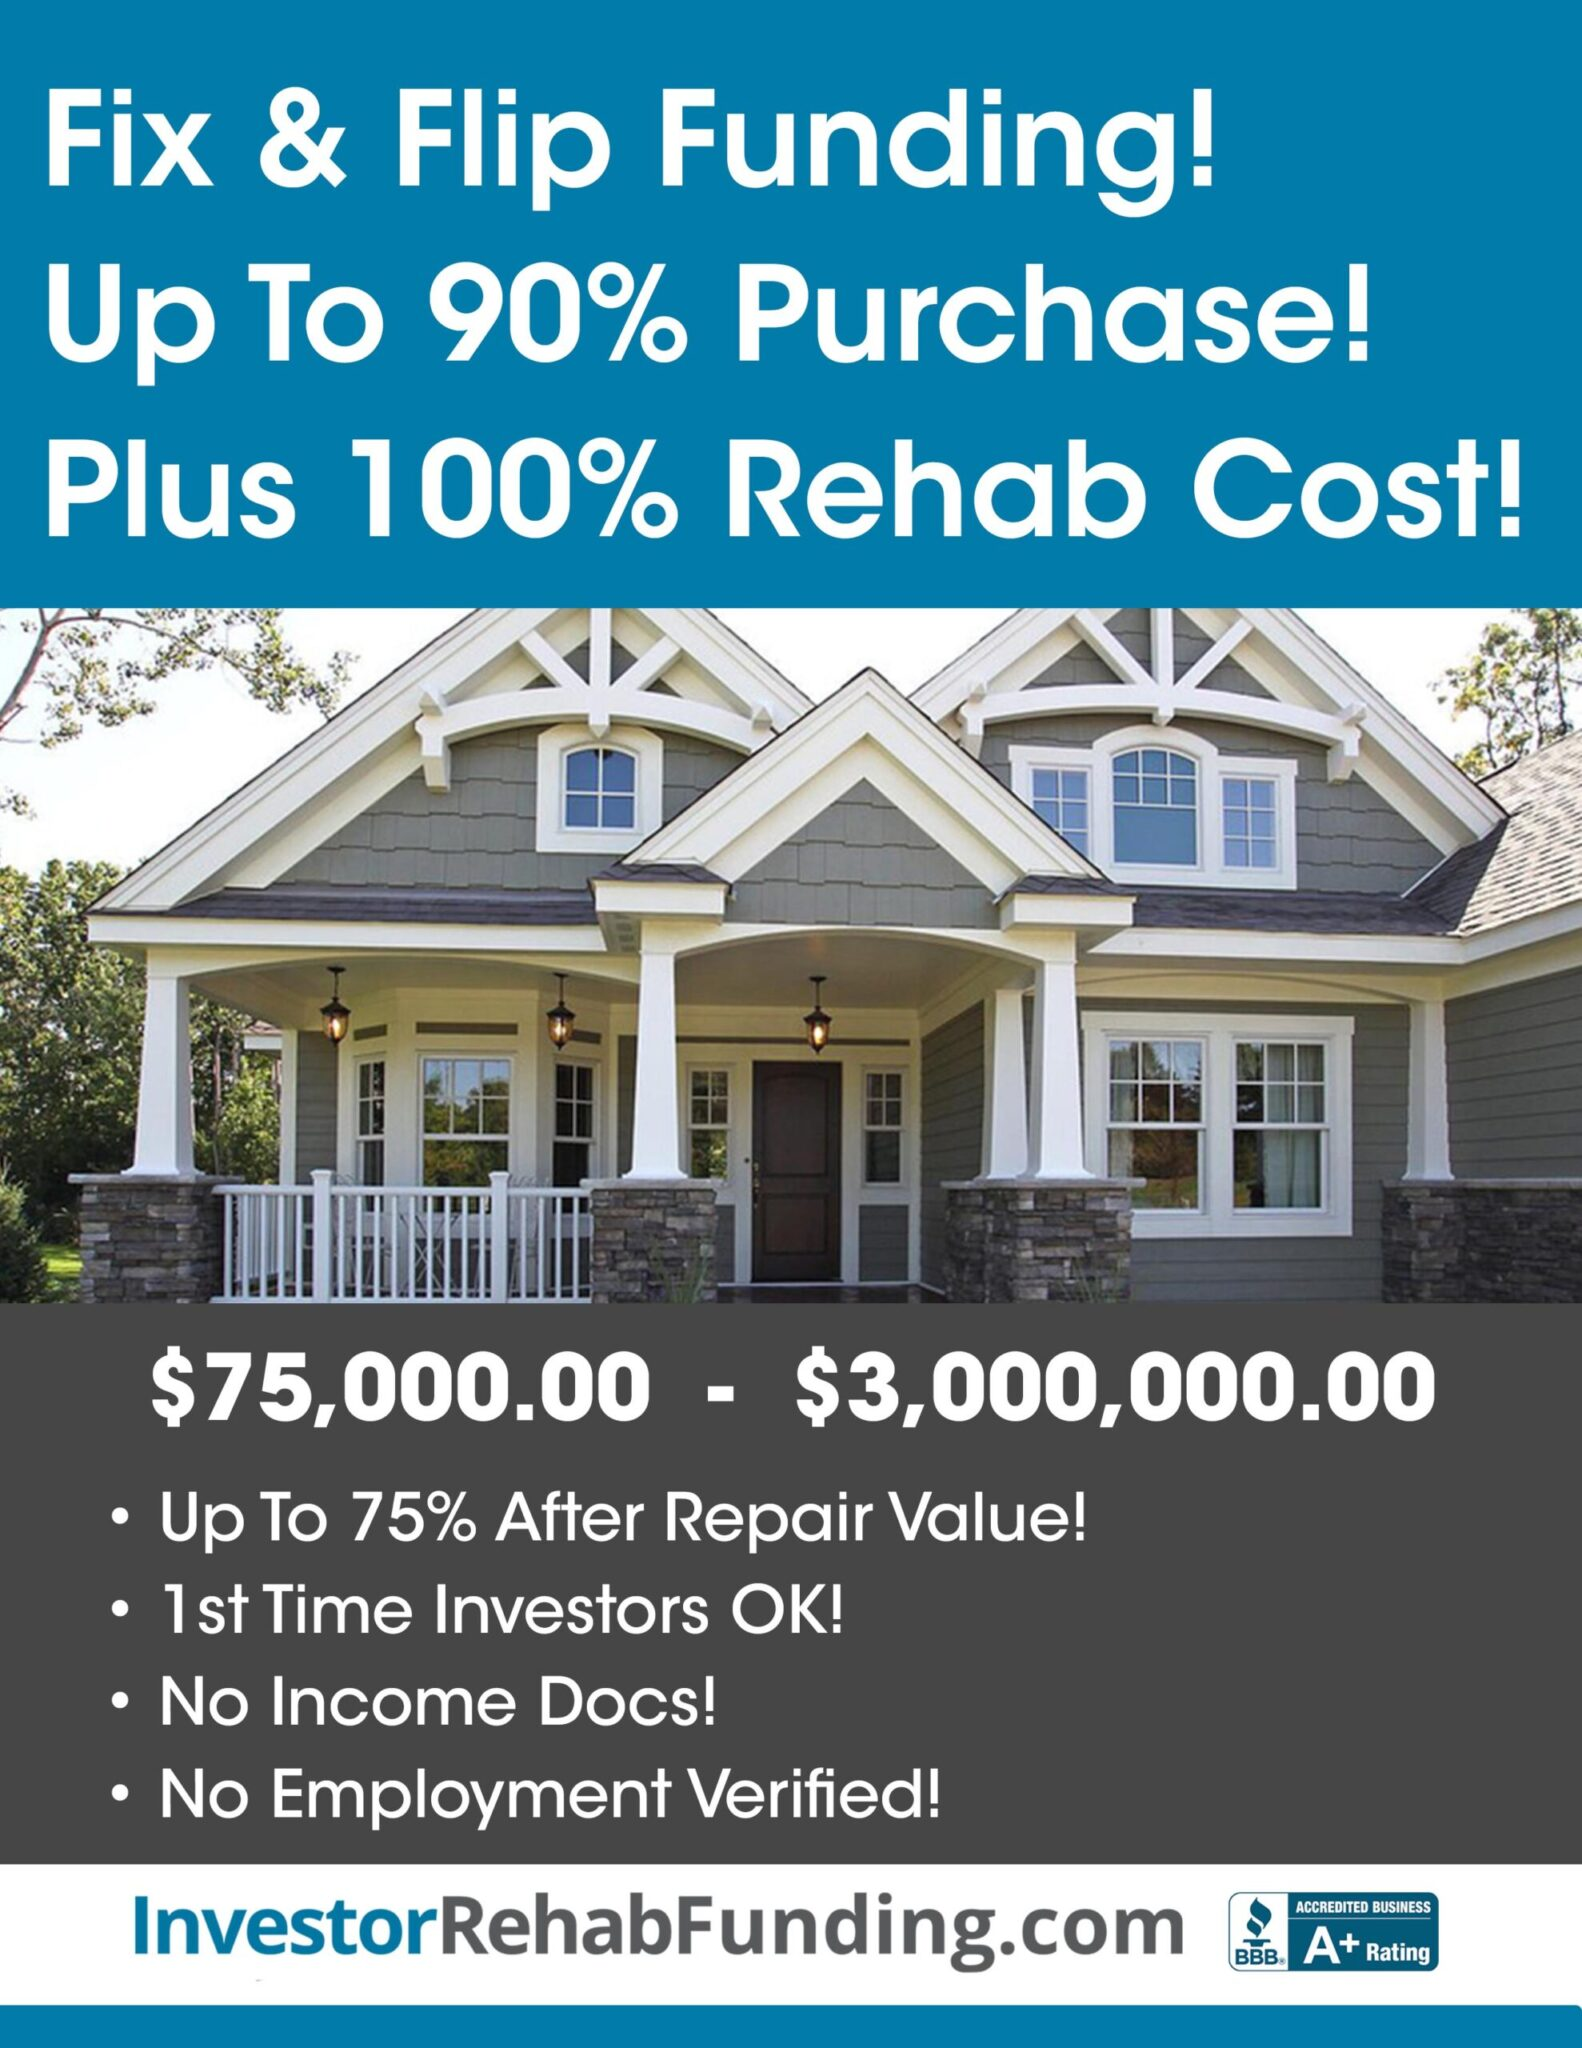 90% PURCHASE & 100% REHAB – INVESTOR FIX & FLIP FUNDINGUp To $2,000,000.00 – No Income Docs!